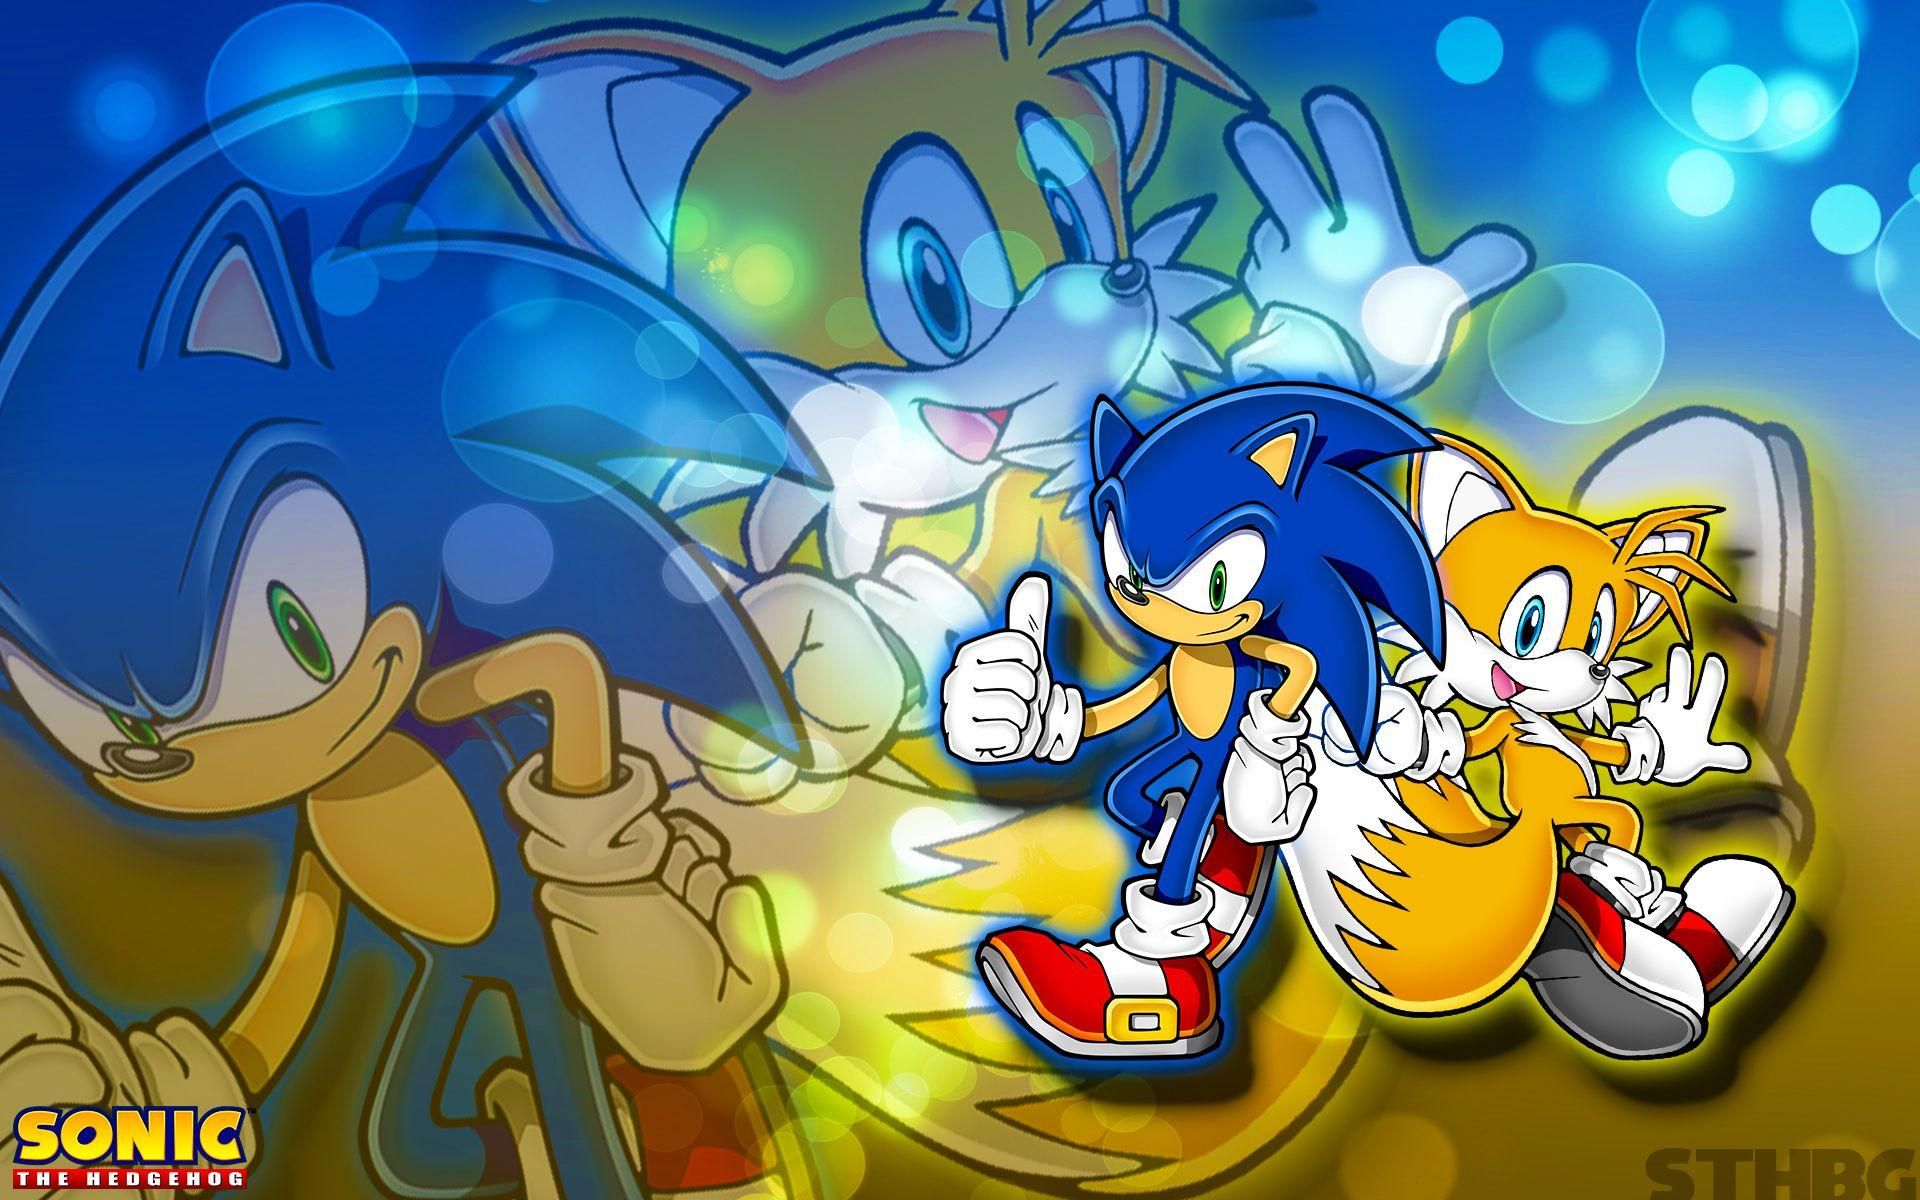 Sonic And Tails Wallpapers Wallpaper Cave